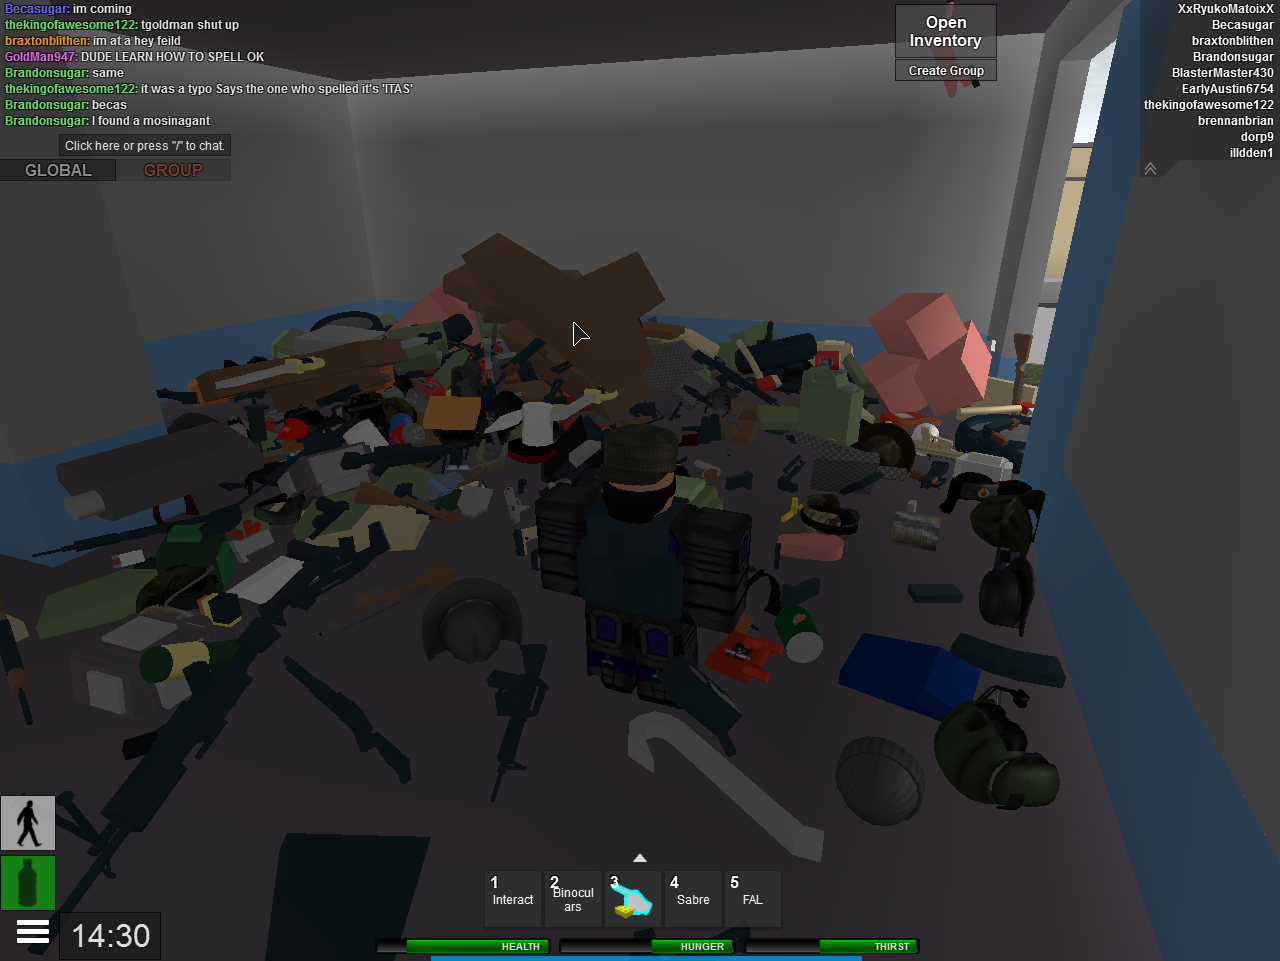 Image Robloxscreenshot10152014 150208270 Png Roblox Apocalypse Rising Wiki Fandom Powered